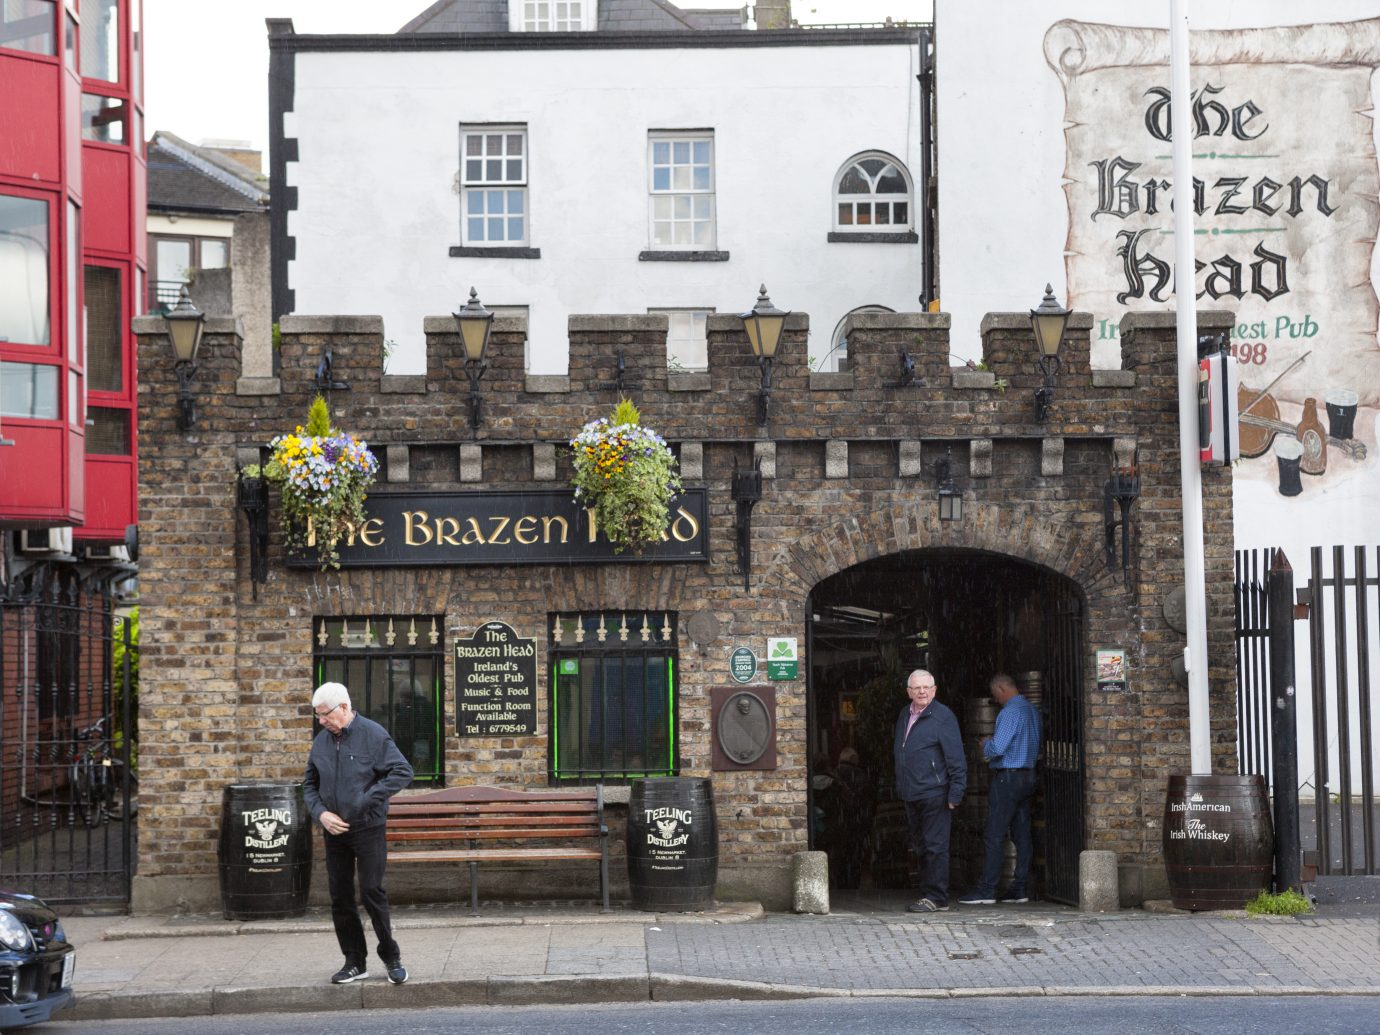 The Brazen Head pub in Dublin, Ireland